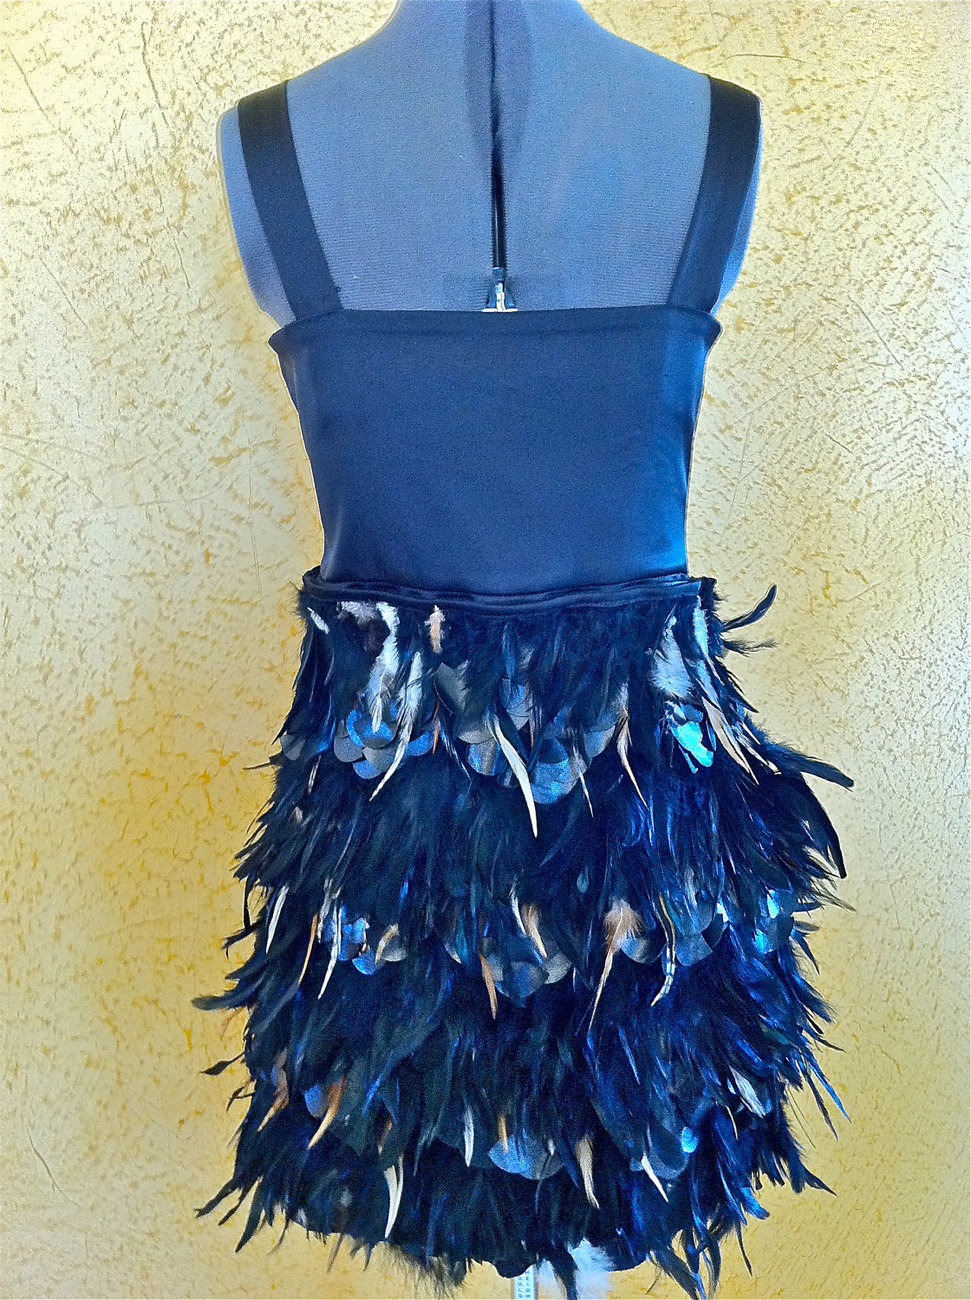 Black Feather Dress for any special occasion, with real hand stitched feathers